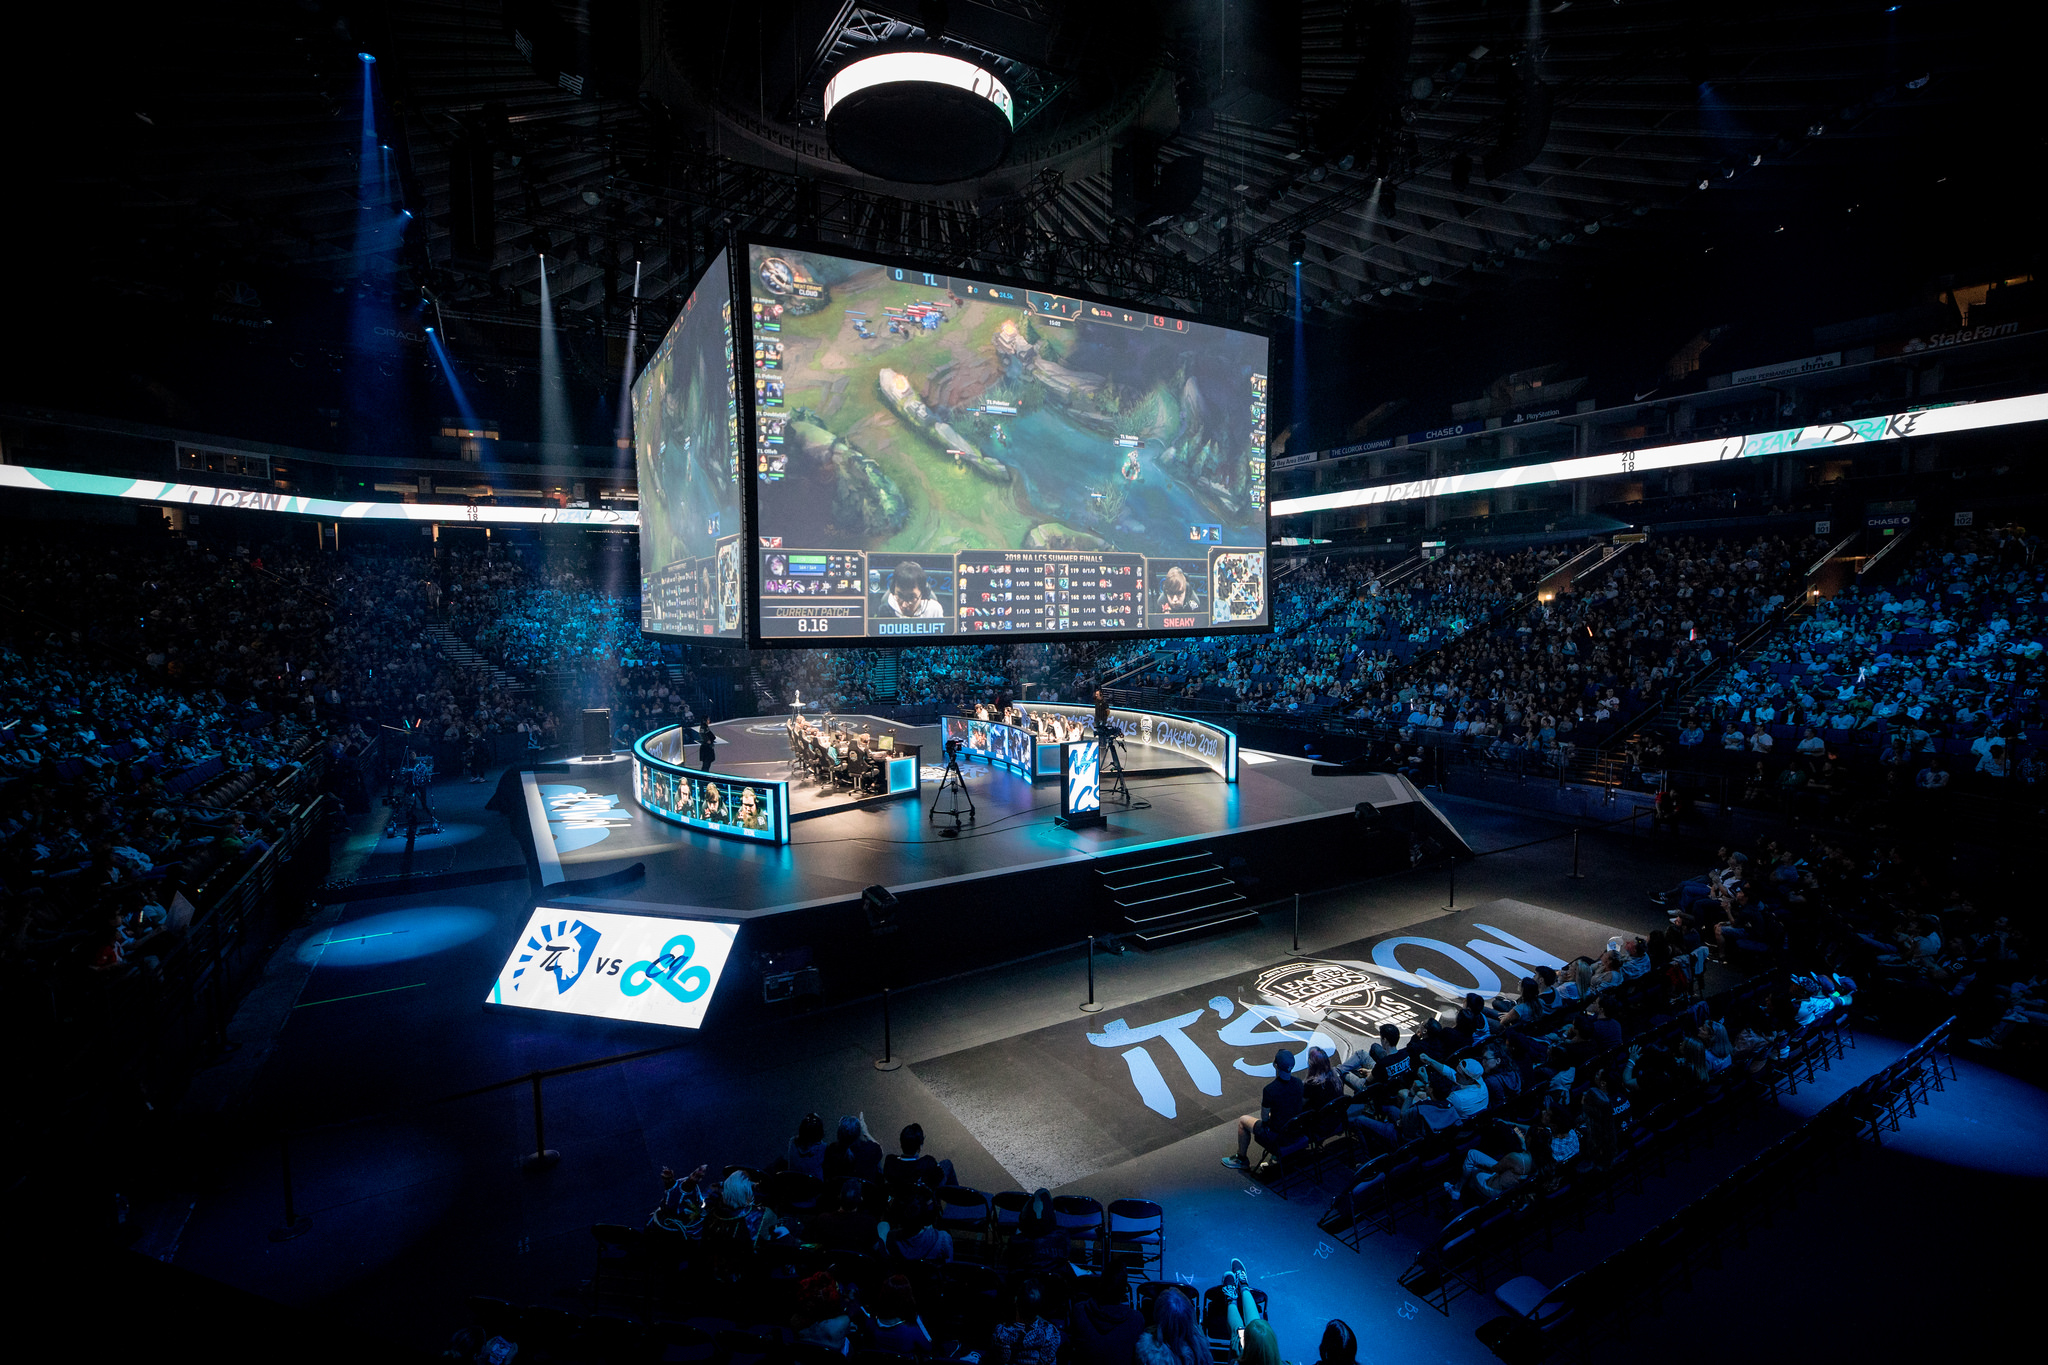 Na Lcs Schedule 2020 NA LCS 2019 season: Roster changes, free agents and more   The